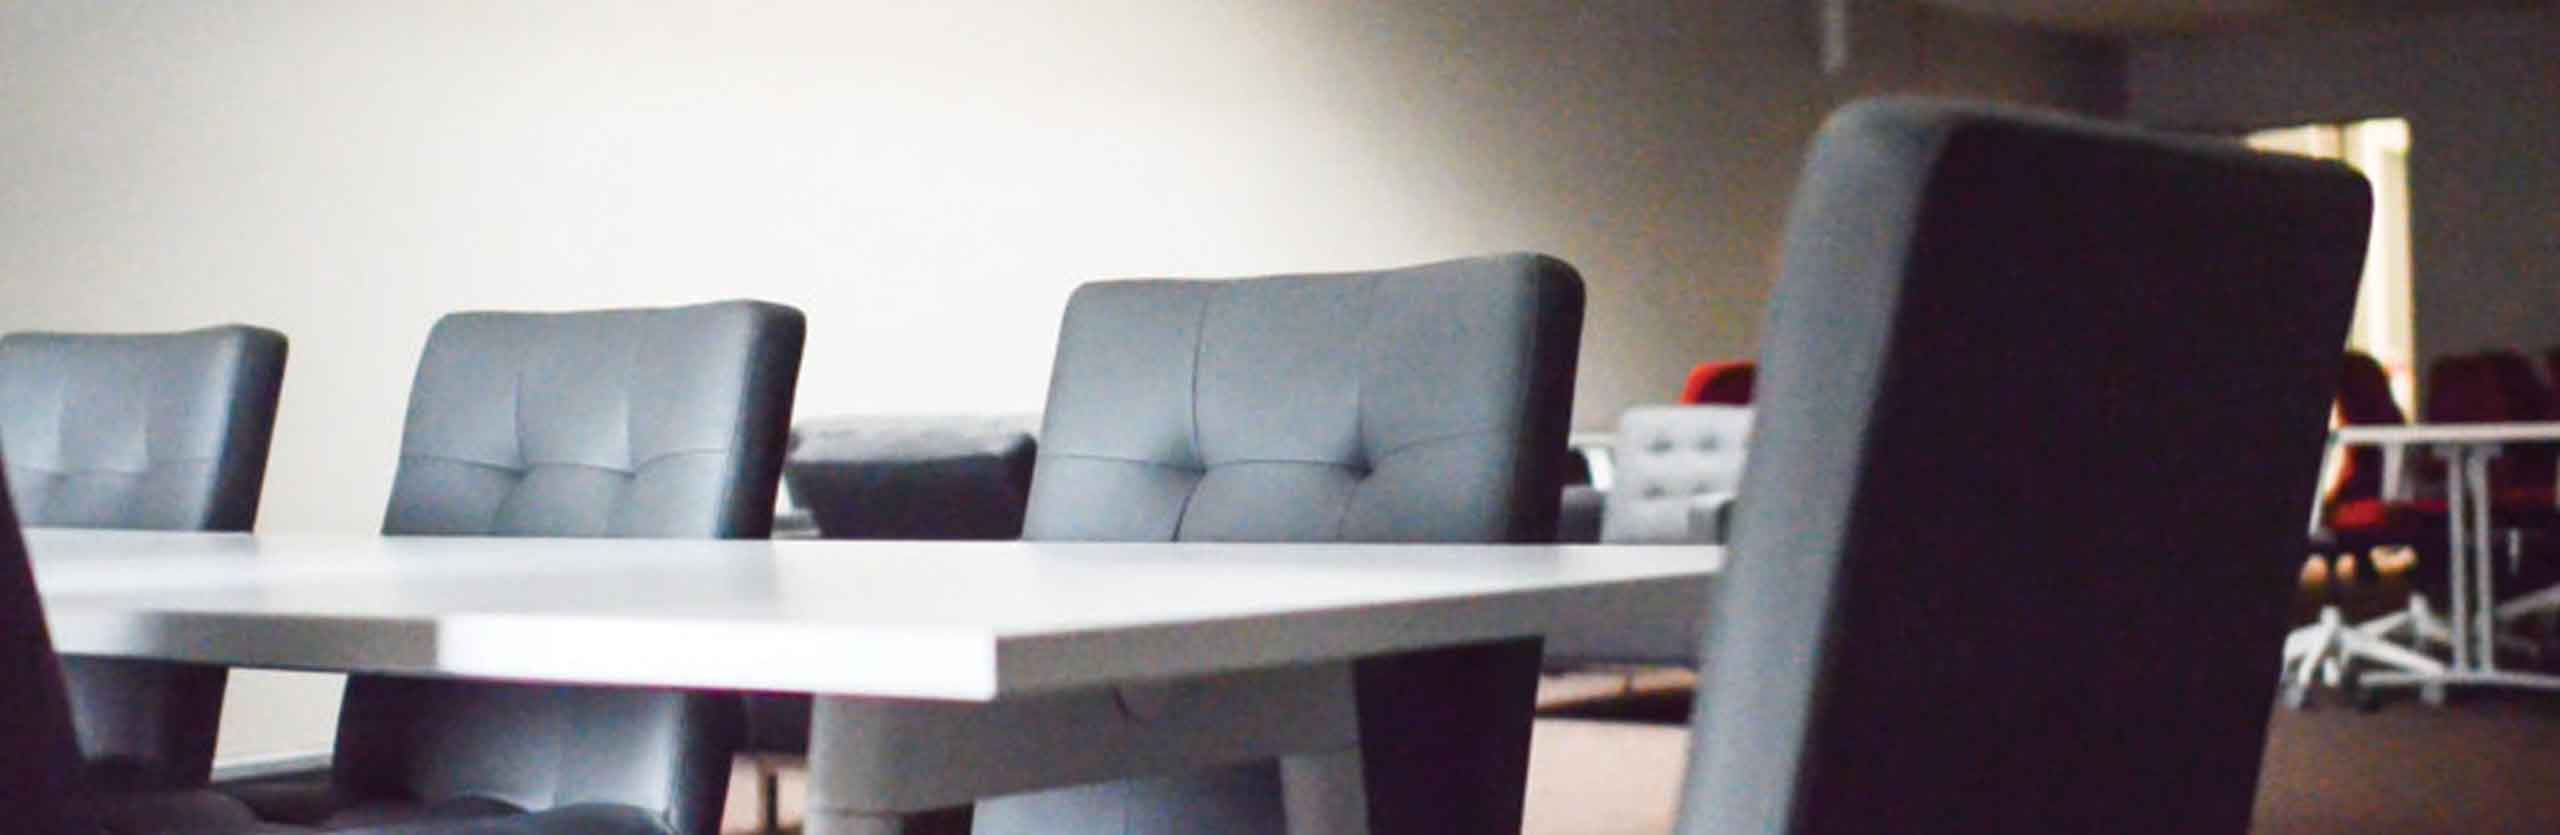 Modern grey couches sit in the shared coworking space of The Studio Coworking.